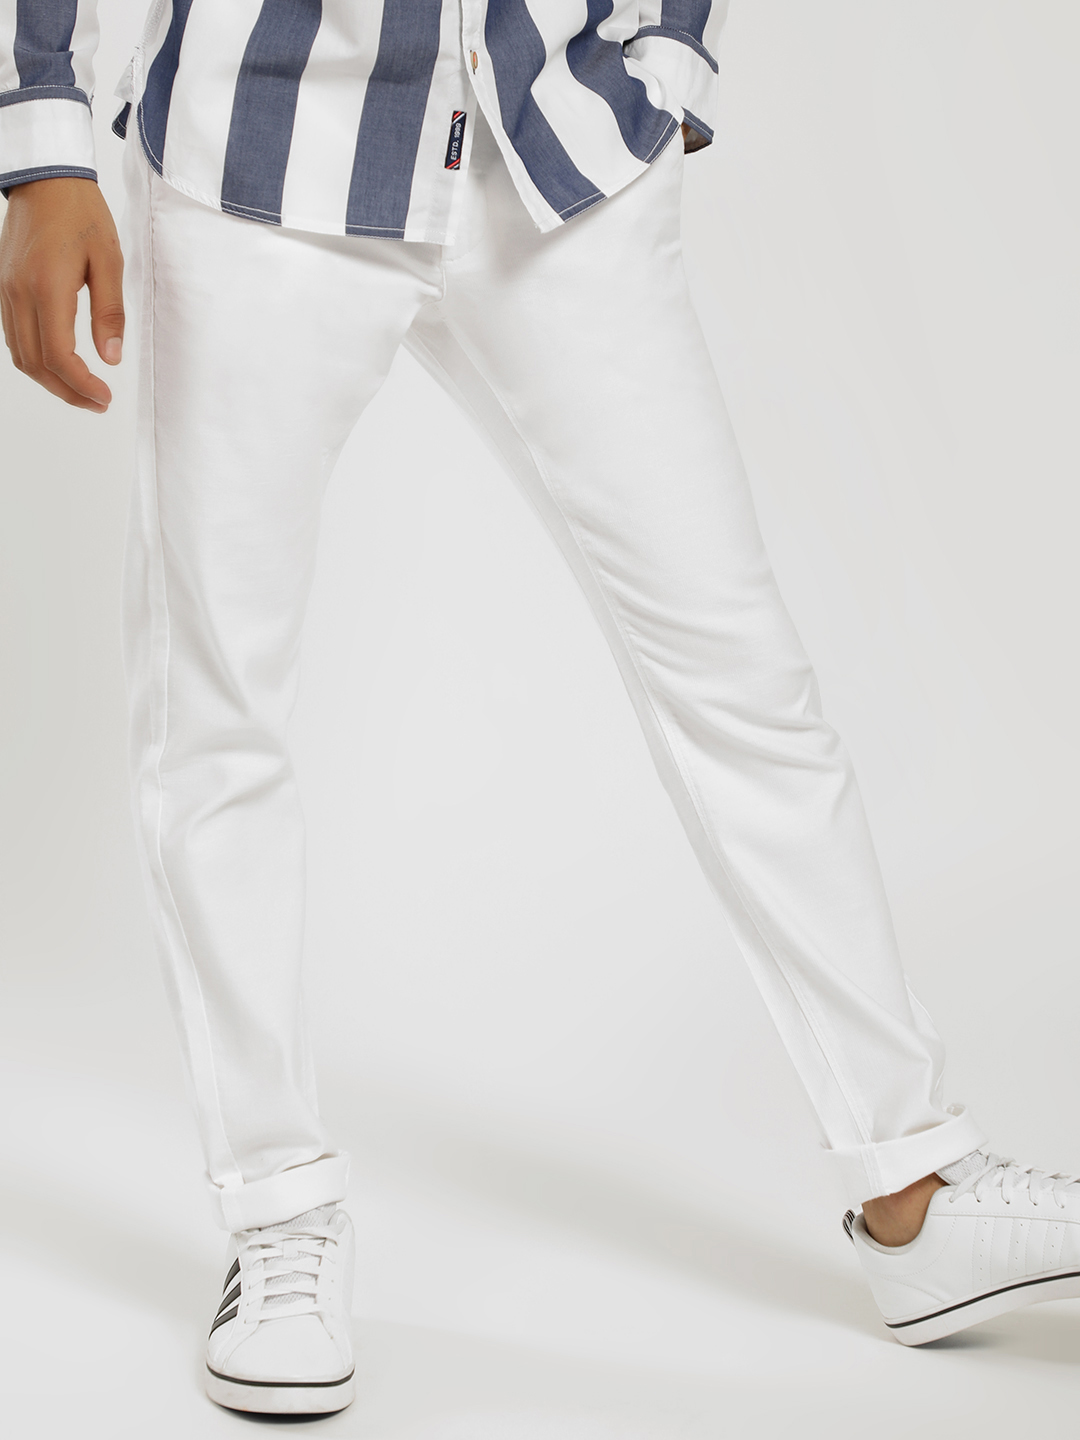 SCULLERS White Textured Slim Trousers 1